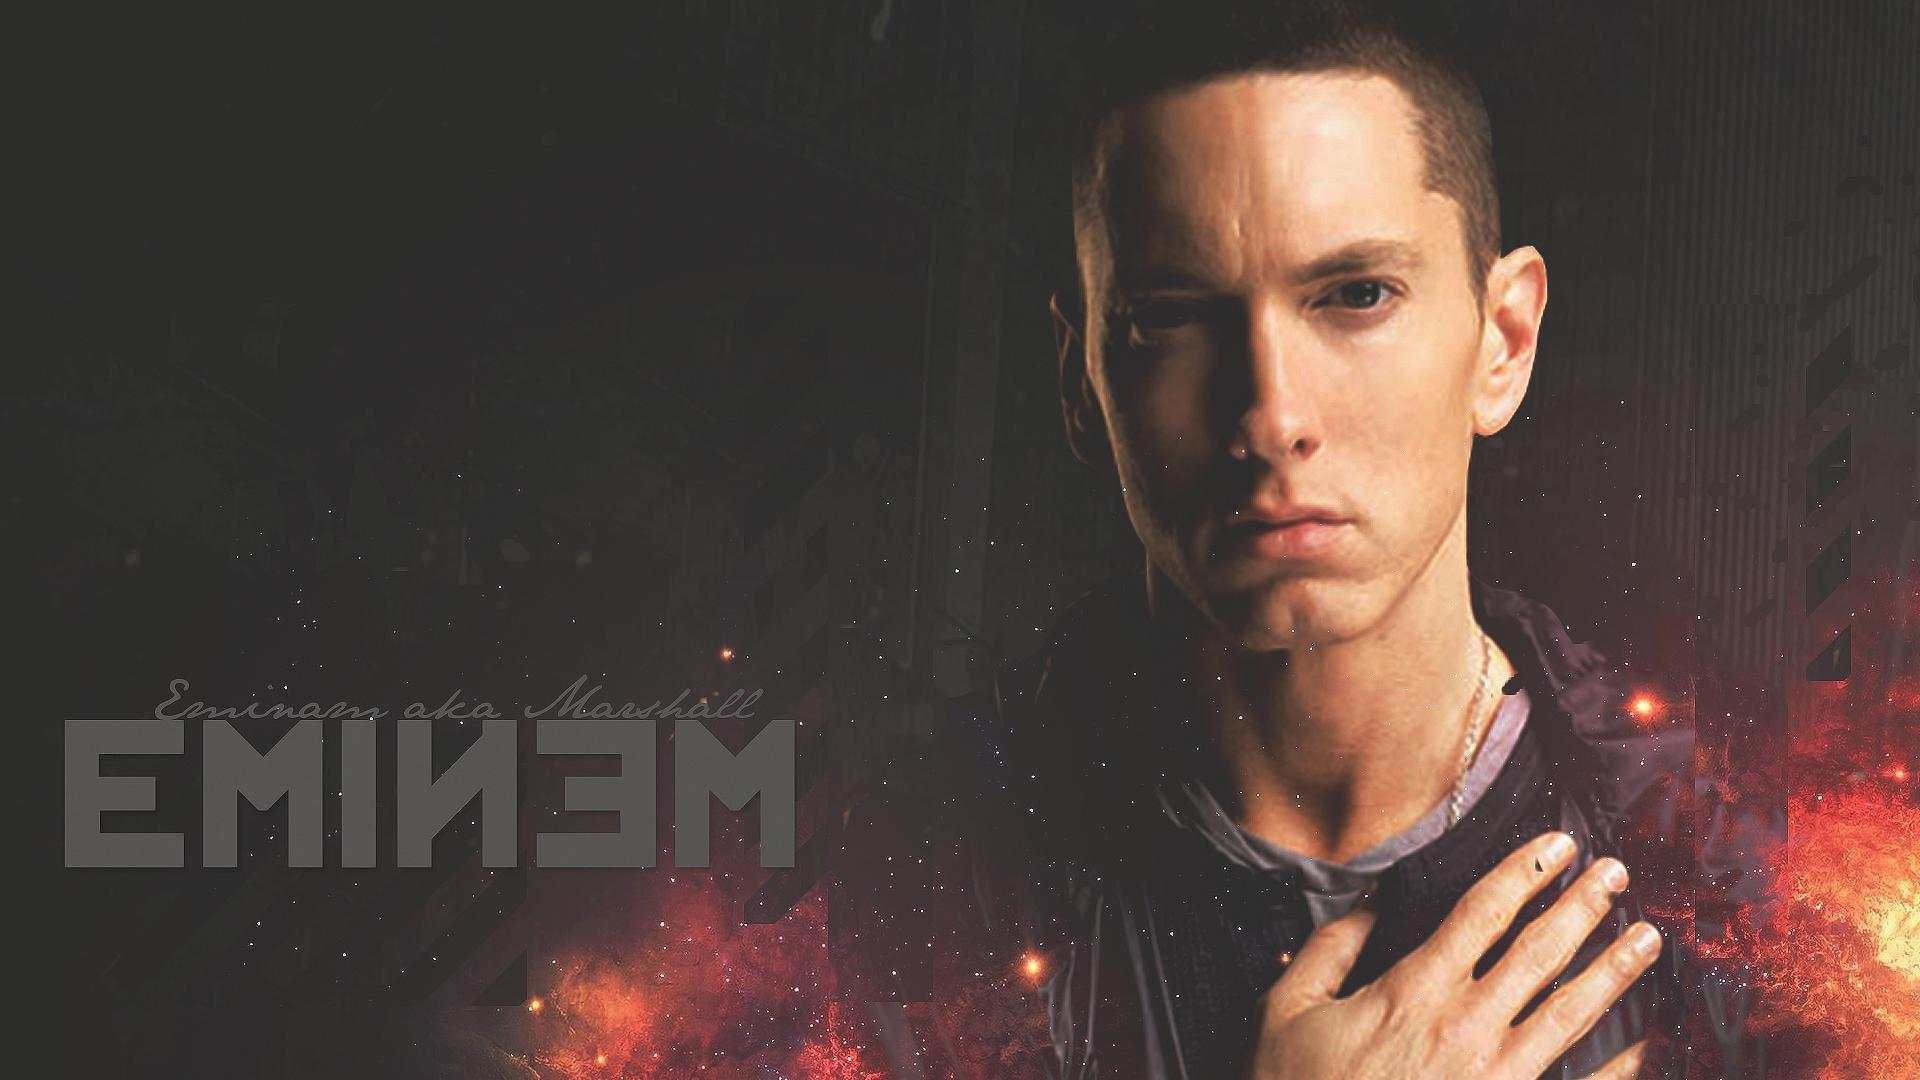 eminem wallpapers - photo #1